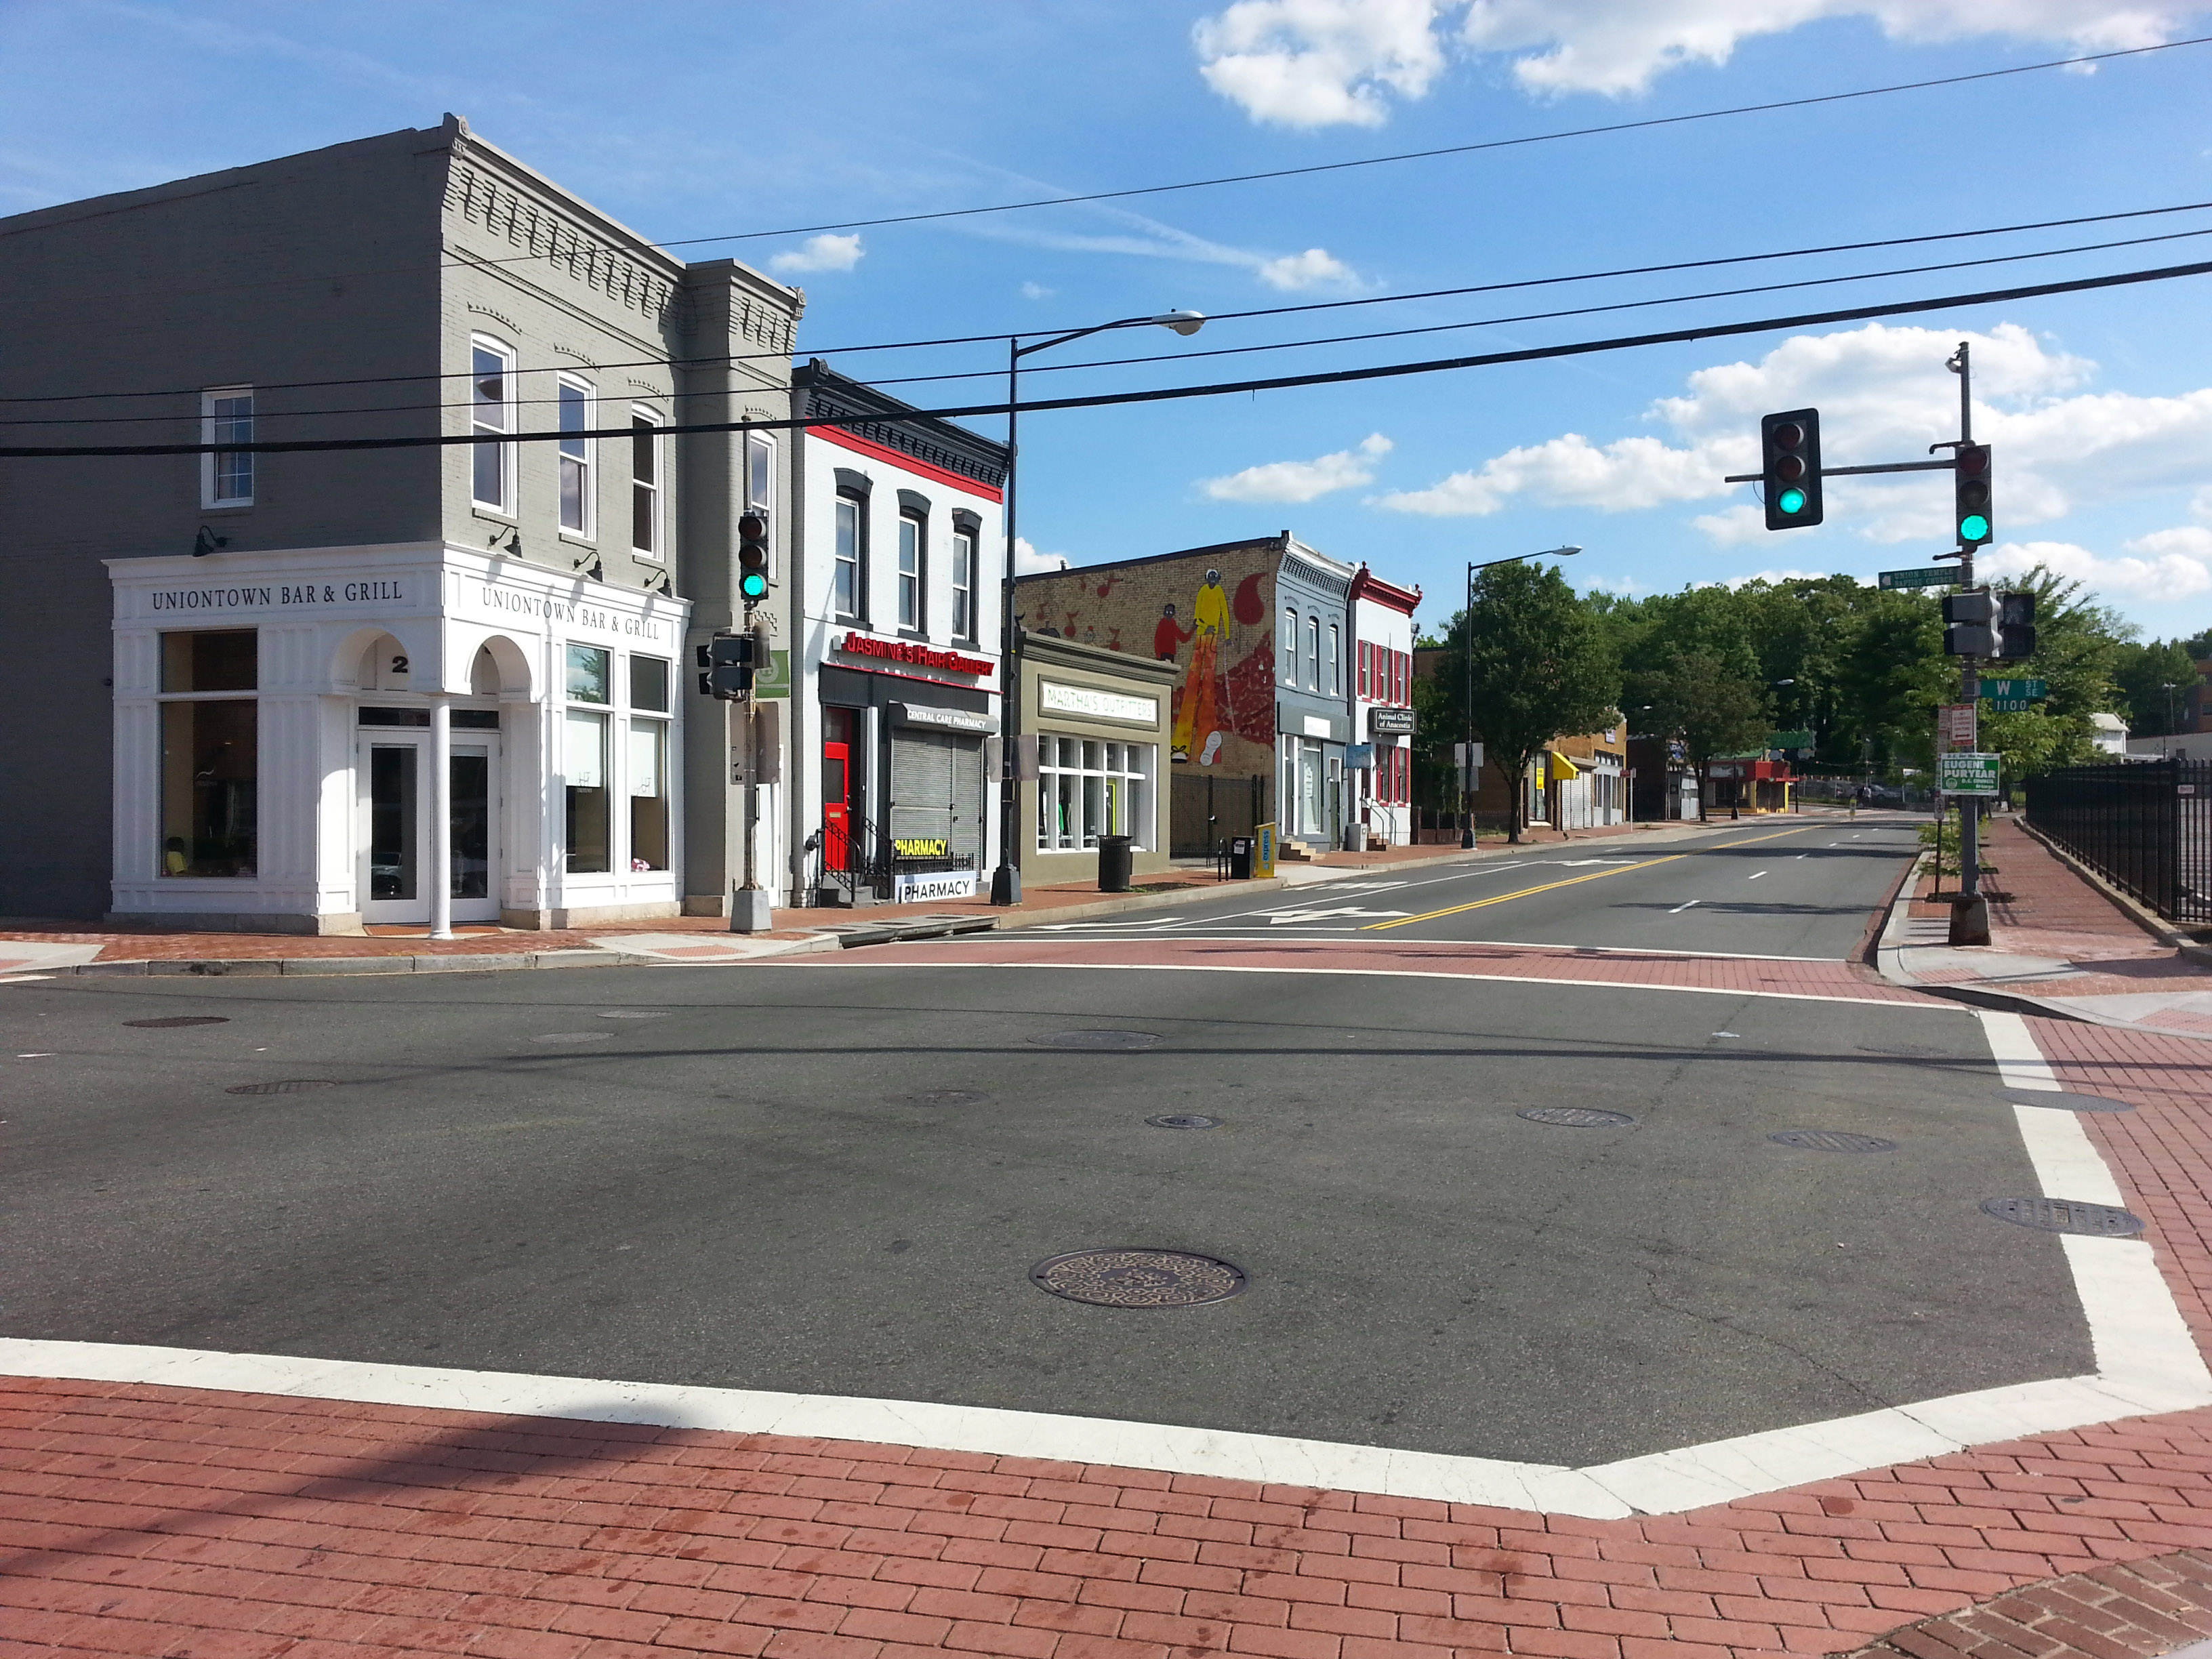 Martin Luther King Jr Ave SE in Anacostia. Photo Credit: BeyondDC